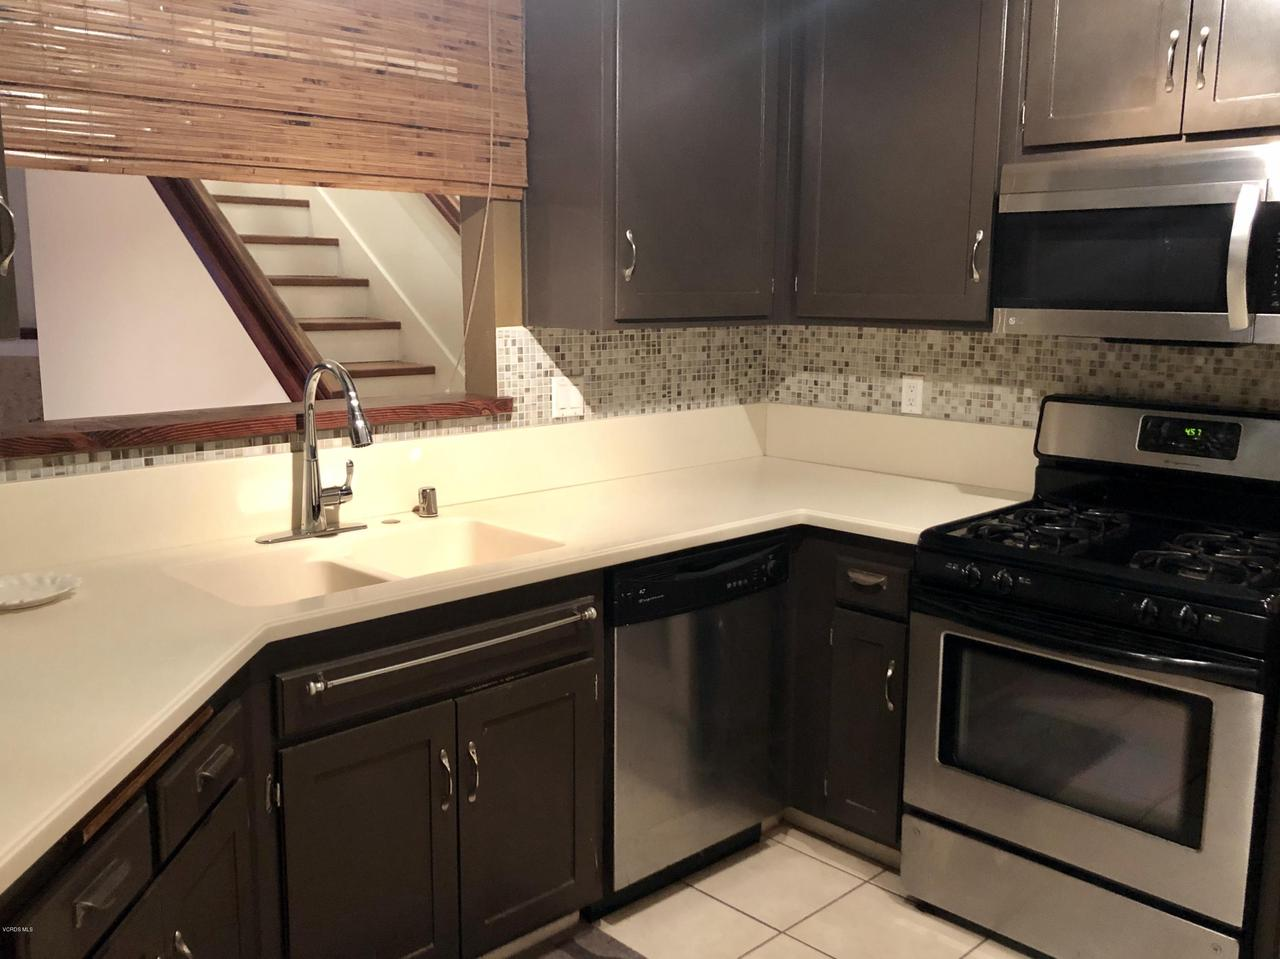 707 ISLAND VIEW, Port Hueneme, CA 93041 - KITCHEN/VIEW TO LIVING AREA